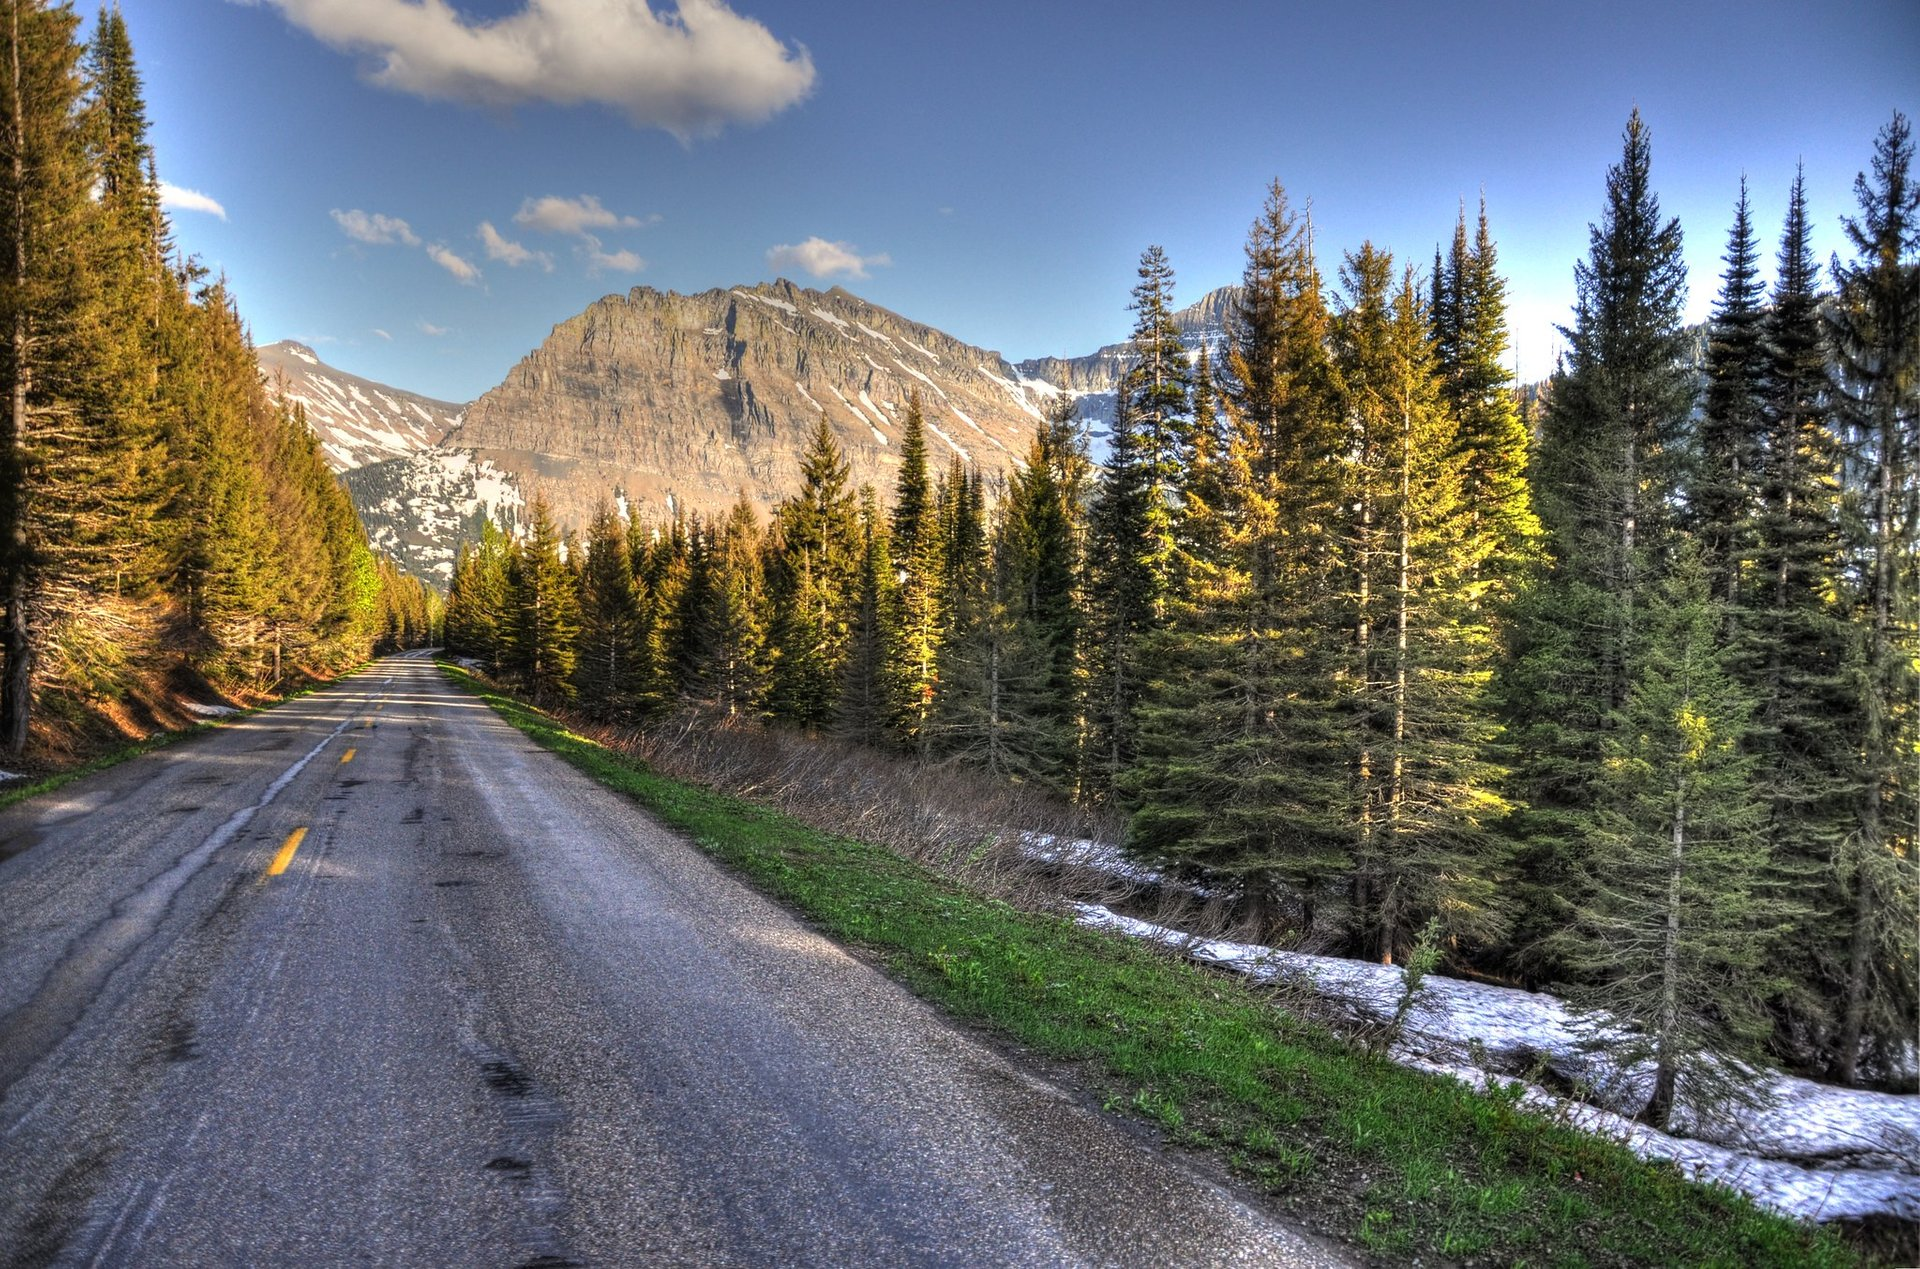 Going-to-the-Sun Road in Montana 2020 - Best Time